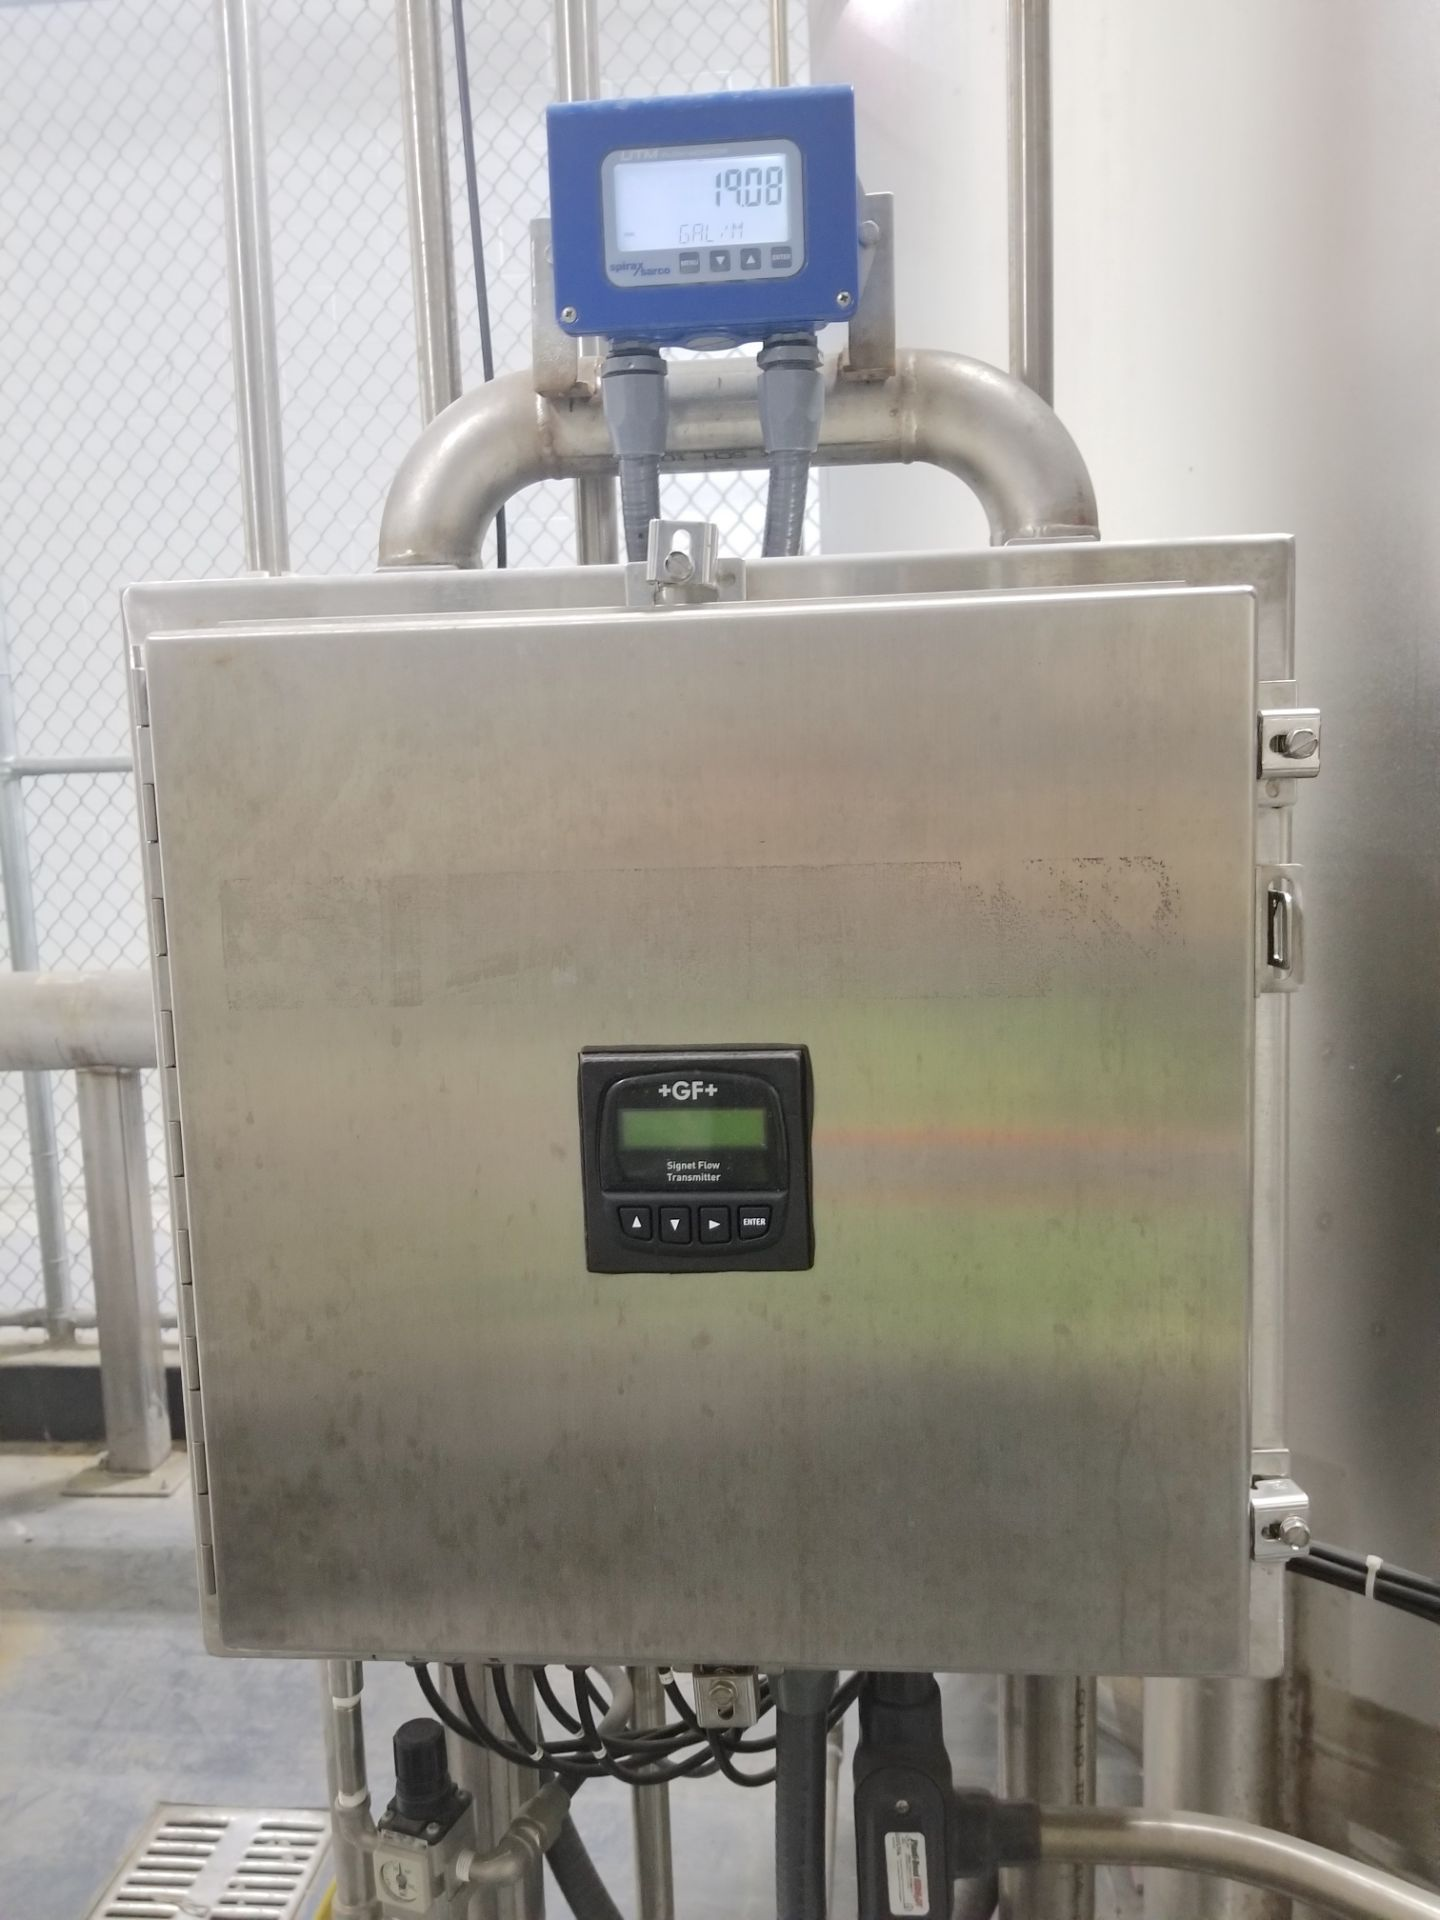 Stainless Steel Carbon Filter Tank - Image 6 of 7